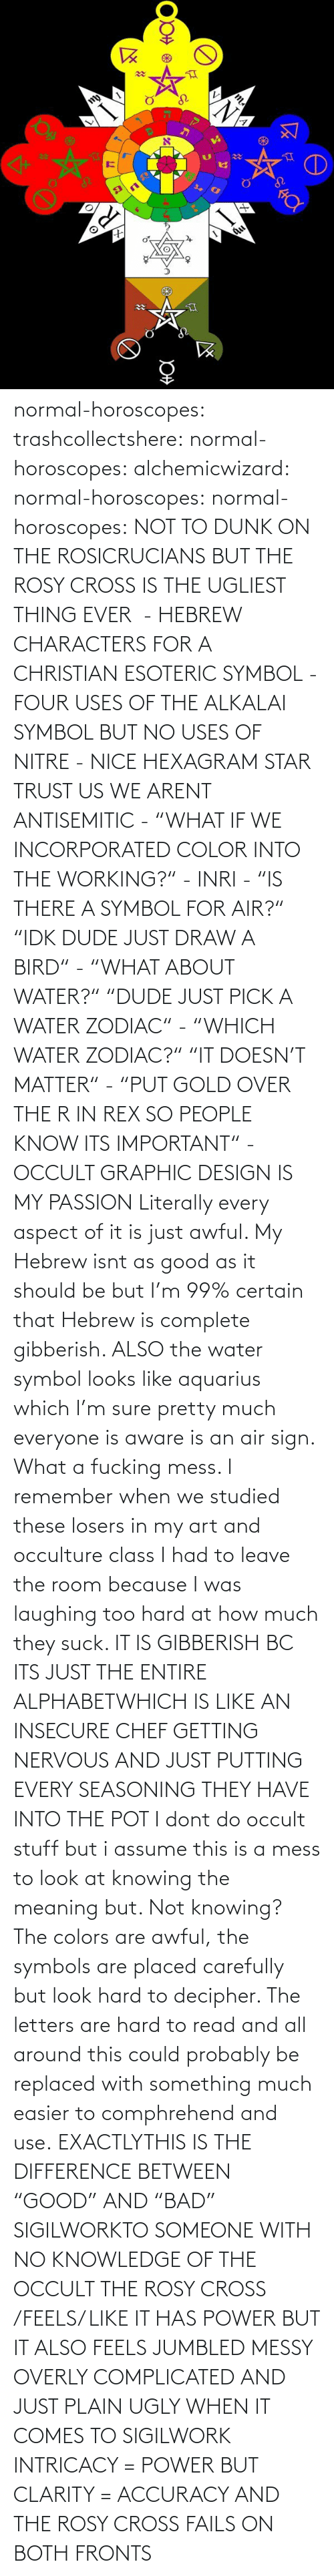 "Ugly: normal-horoscopes:  trashcollectshere: normal-horoscopes:   alchemicwizard:  normal-horoscopes:  normal-horoscopes: NOT TO DUNK ON THE ROSICRUCIANS BUT THE ROSY CROSS IS THE UGLIEST THING EVER  - HEBREW CHARACTERS FOR A CHRISTIAN ESOTERIC SYMBOL - FOUR USES OF THE ALKALAI SYMBOL BUT NO USES OF NITRE - NICE HEXAGRAM STAR TRUST US WE ARENT ANTISEMITIC - ""WHAT IF WE INCORPORATED COLOR INTO THE WORKING?"" - INRI - ""IS THERE A SYMBOL FOR AIR?"" ""IDK DUDE JUST DRAW A BIRD"" - ""WHAT ABOUT WATER?"" ""DUDE JUST PICK A WATER ZODIAC"" - ""WHICH WATER ZODIAC?"" ""IT DOESN'T MATTER"" - ""PUT GOLD OVER THE R IN REX SO PEOPLE KNOW ITS IMPORTANT"" - OCCULT GRAPHIC DESIGN IS MY PASSION  Literally every aspect of it is just awful. My Hebrew isnt as good as it should be but I'm 99% certain that Hebrew is complete gibberish.  ALSO the water symbol looks like aquarius which I'm sure pretty much everyone is aware is an air sign. What a fucking mess.  I remember when we studied these losers in my art and occulture class I had to leave the room because I was laughing too hard at how much they suck.   IT IS GIBBERISH BC ITS JUST THE ENTIRE ALPHABETWHICH IS LIKE AN INSECURE CHEF GETTING NERVOUS AND JUST PUTTING EVERY SEASONING THEY HAVE INTO THE POT     I dont do occult stuff but i assume this is a mess to look at knowing the meaning but. Not knowing? The colors are awful, the symbols are placed carefully but look hard to decipher. The letters are hard to read and all around this could probably be replaced with something much easier to comphrehend and use.  EXACTLYTHIS IS THE DIFFERENCE BETWEEN ""GOOD"" AND ""BAD"" SIGILWORKTO SOMEONE WITH NO KNOWLEDGE OF THE OCCULT THE ROSY CROSS /FEELS/ LIKE IT HAS POWER BUT IT ALSO FEELS JUMBLED MESSY OVERLY COMPLICATED AND JUST PLAIN UGLY WHEN IT COMES TO SIGILWORK INTRICACY = POWER BUT CLARITY = ACCURACY AND THE ROSY CROSS FAILS ON BOTH FRONTS"